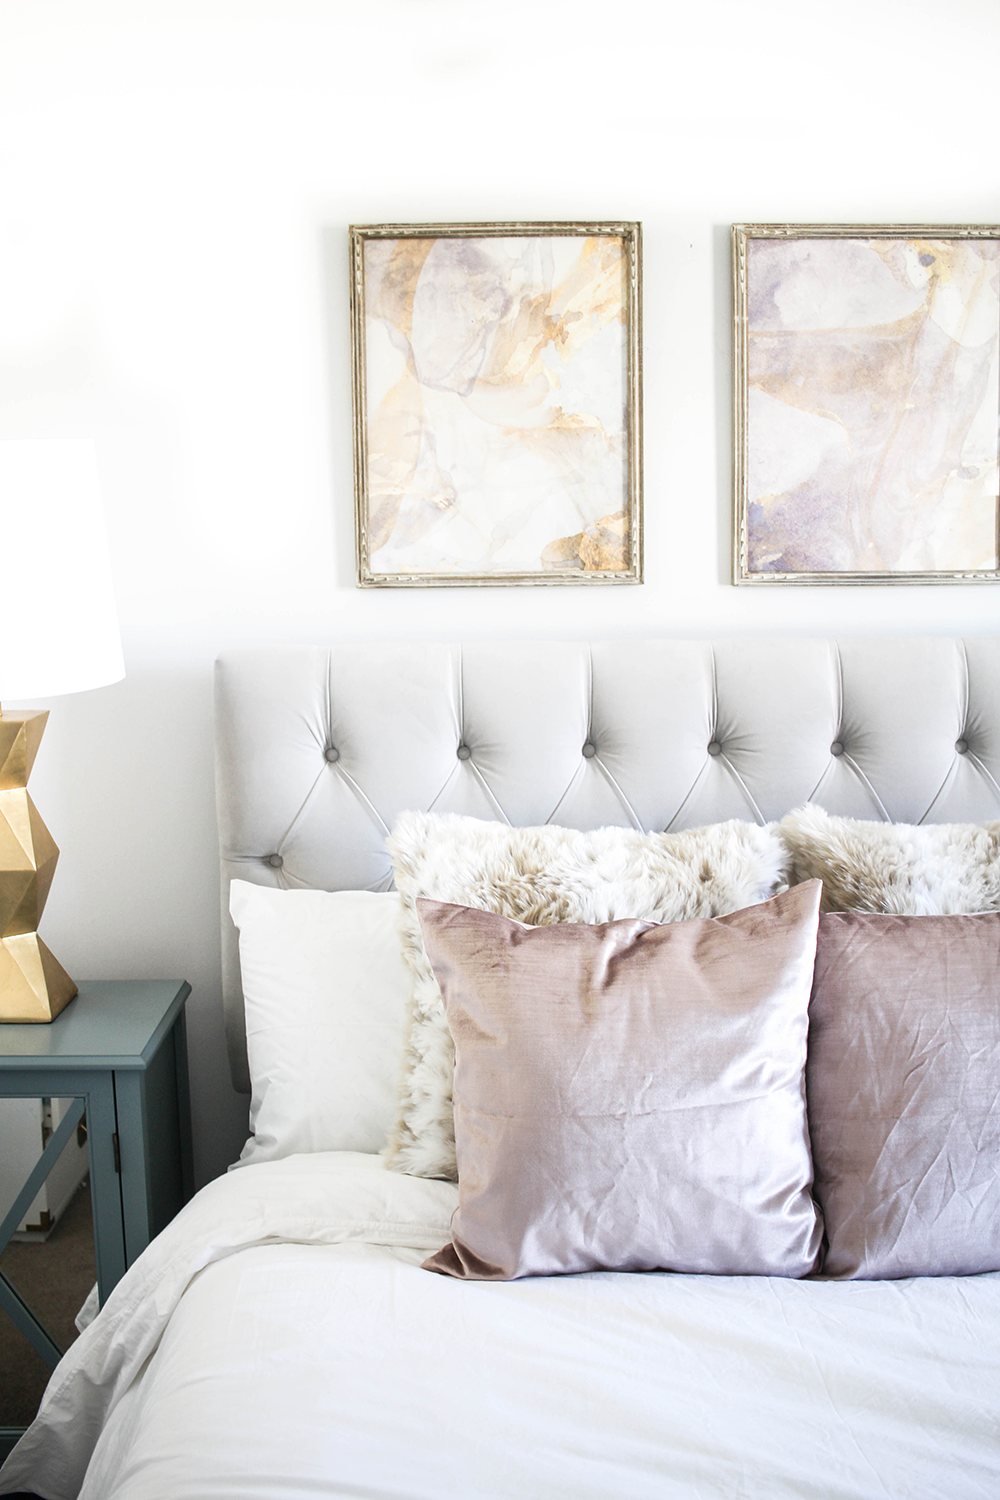 At Home With Raymour Flanigan With Images Small Room Bedroom